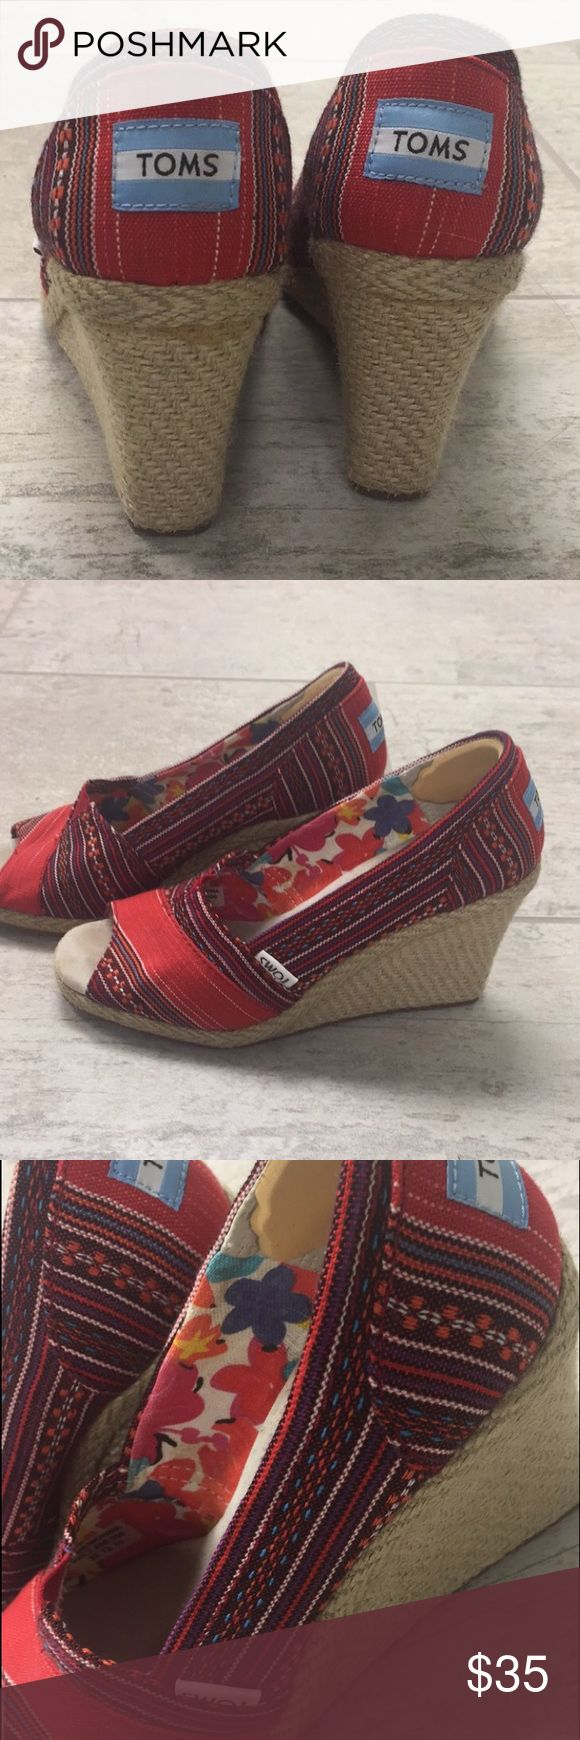 TOMS Womens Canvas Wedges Almost BRAND NEW TOMS wedges! Only worn TWICE! Look new. Size 5 1/2 TOMS brand. TOMS Shoes Wedges